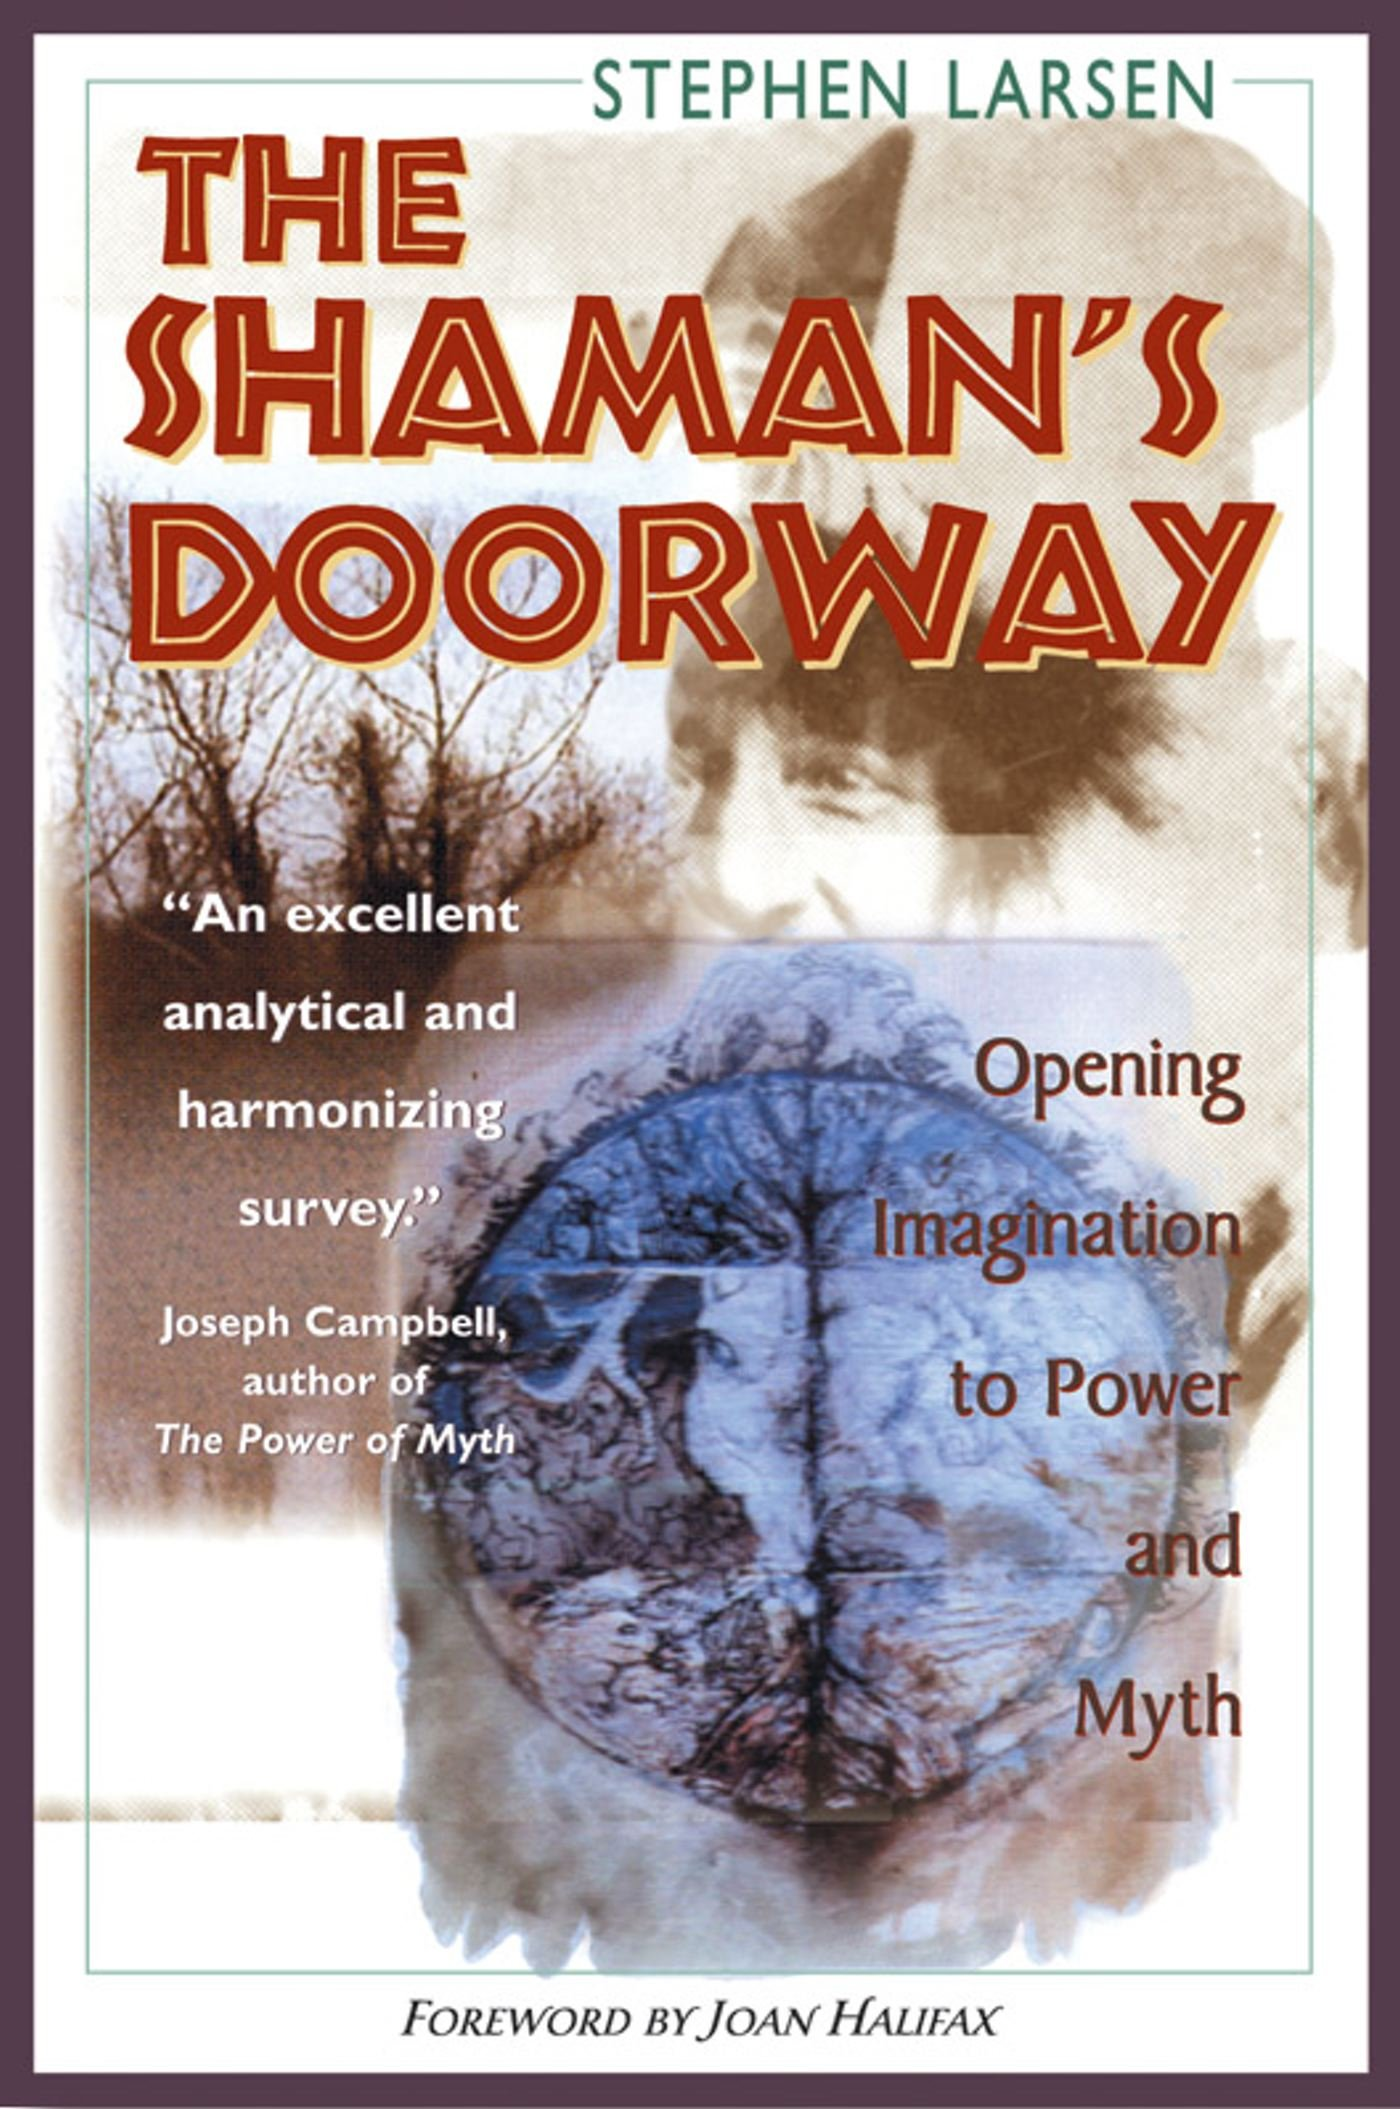 The Shaman's Doorway: Opening Imagination to Power and Myth: Stephen  Larsen, John Halifax: 9780892816729: Amazon.com: Books